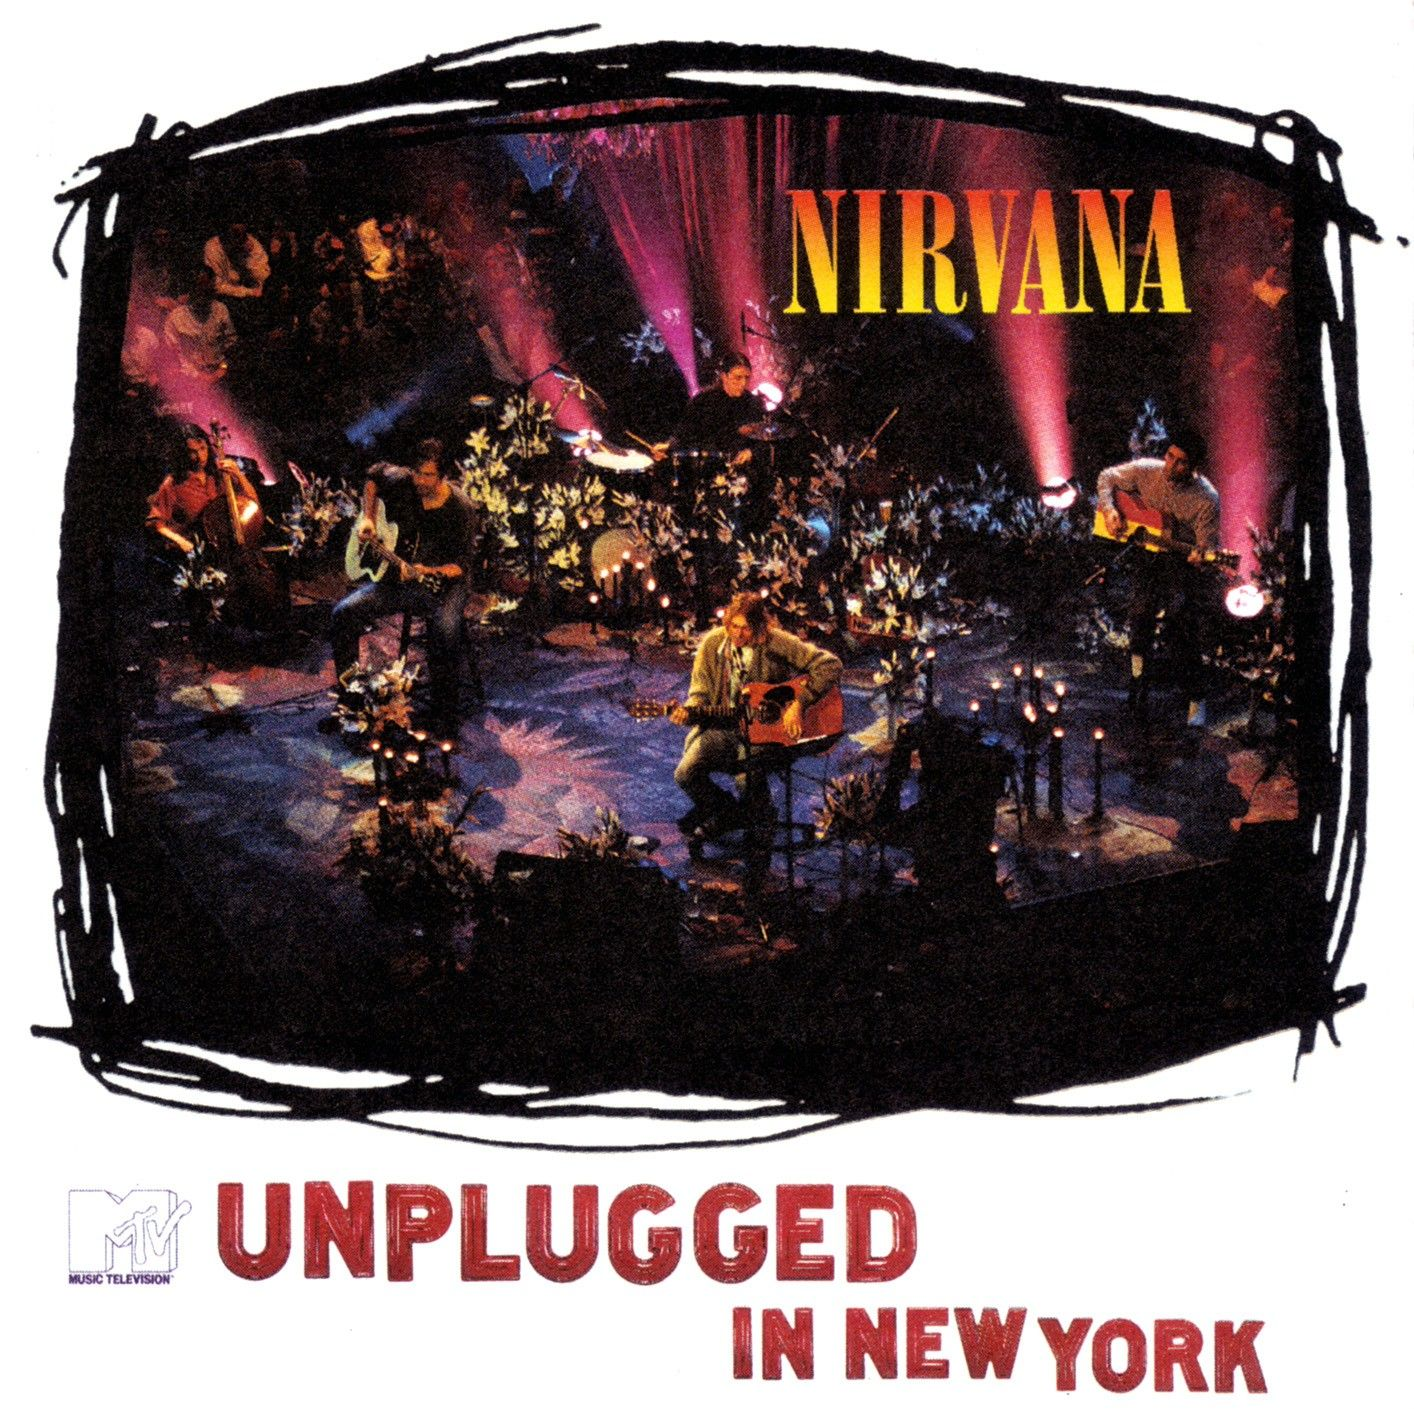 Nirvana - Unplugged In New York album cover